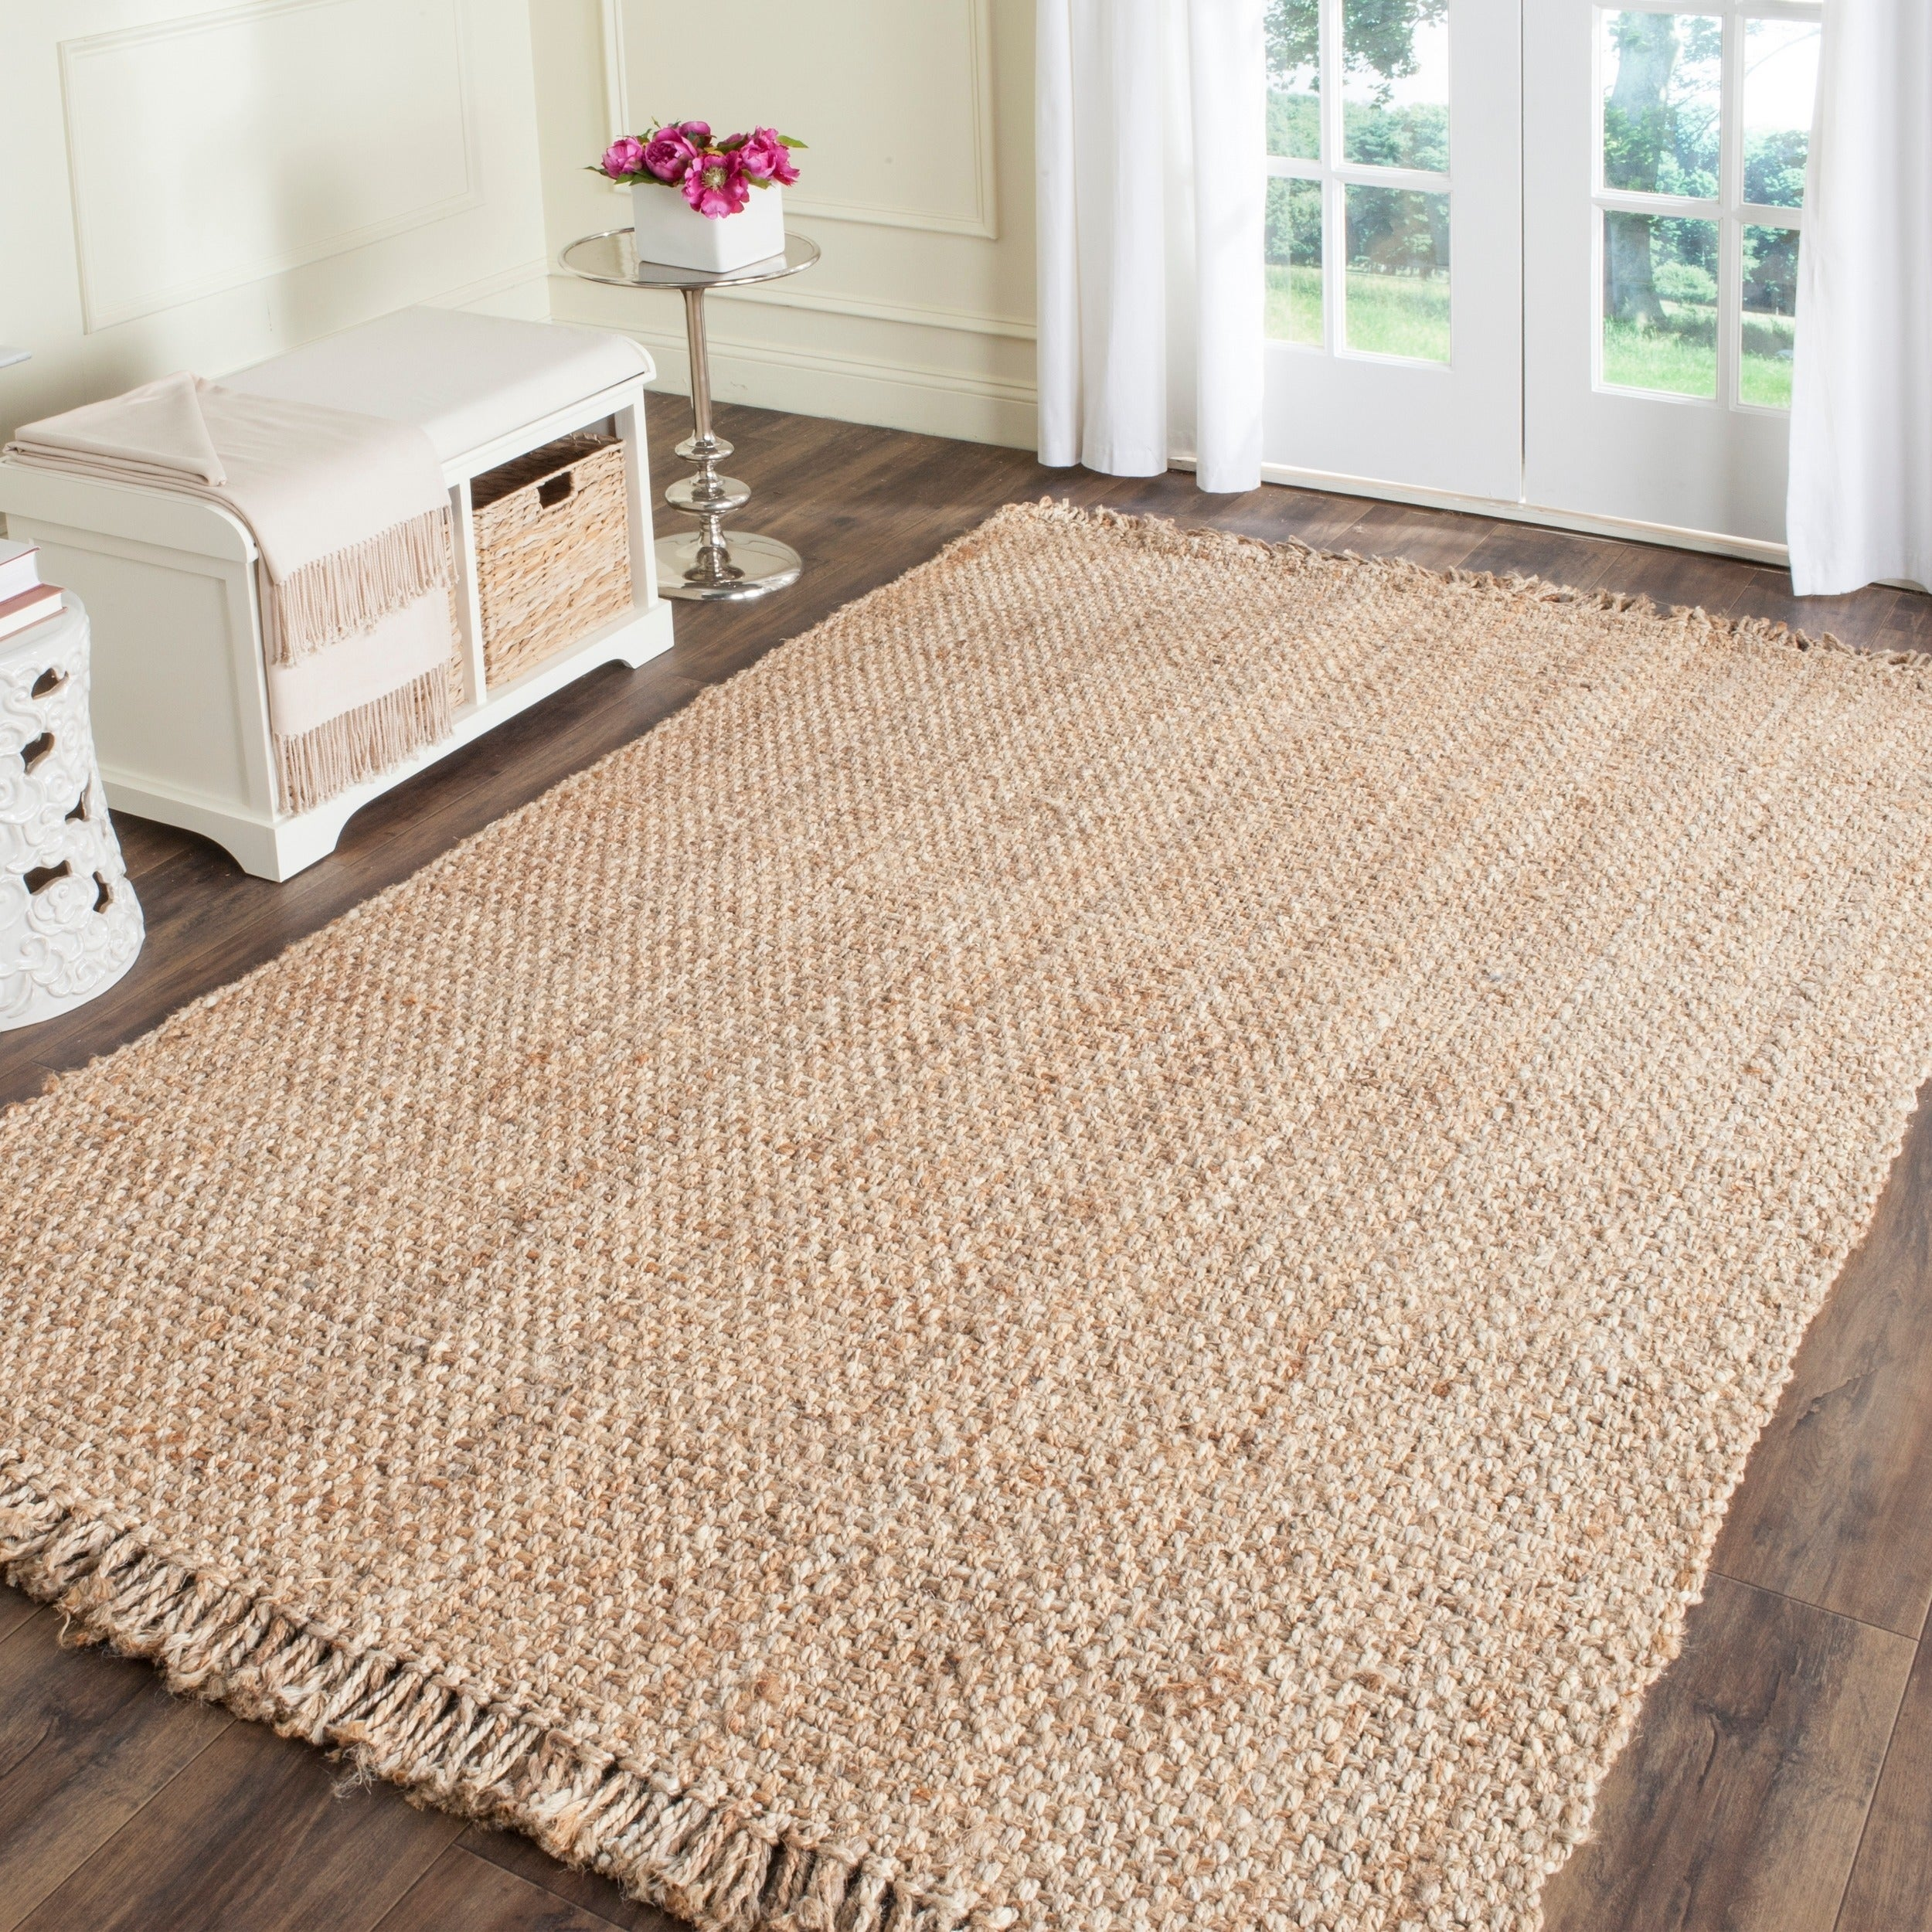 decor of image reisa san natural rugs rug fiber by francisco home soft